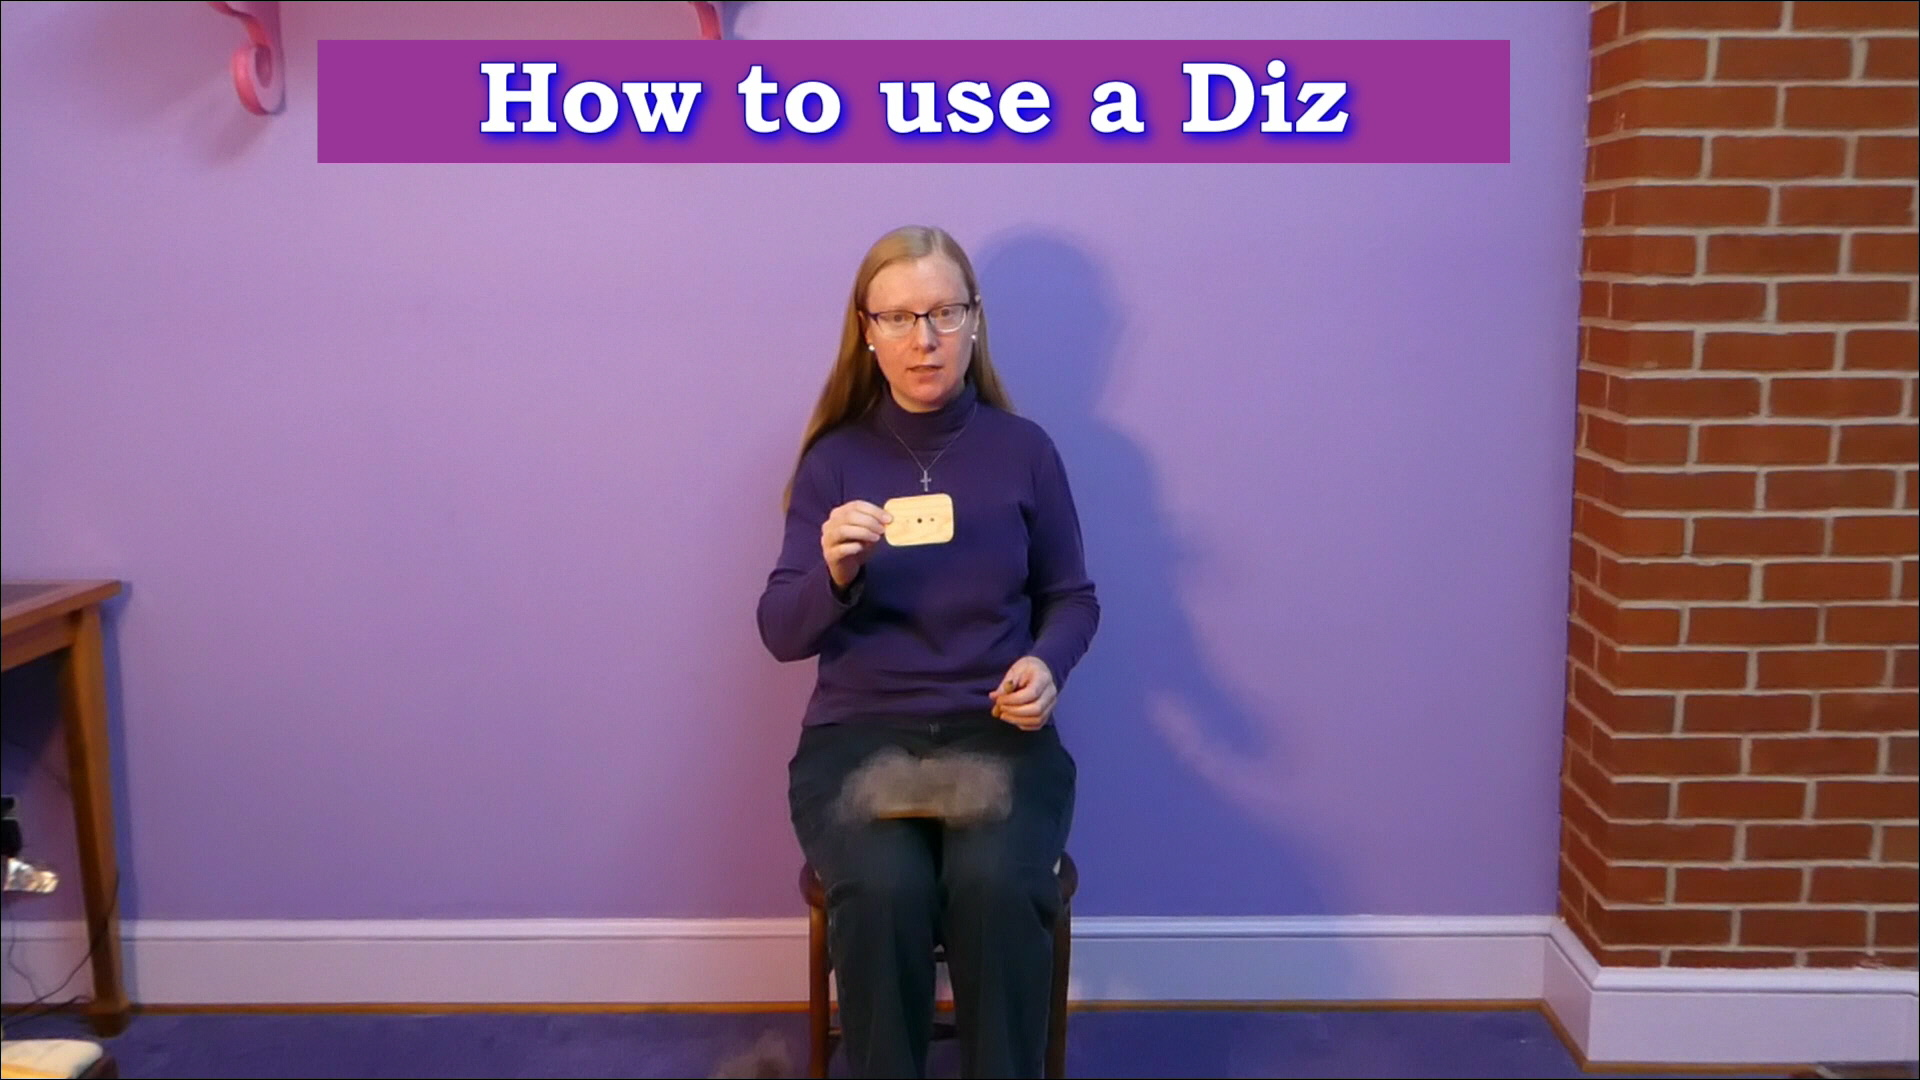 Picture of Cynthia D. Haney seated in a purple room.  Holding a diz, threader, and hand card full of wool.  Links to a video on how to use a diz.